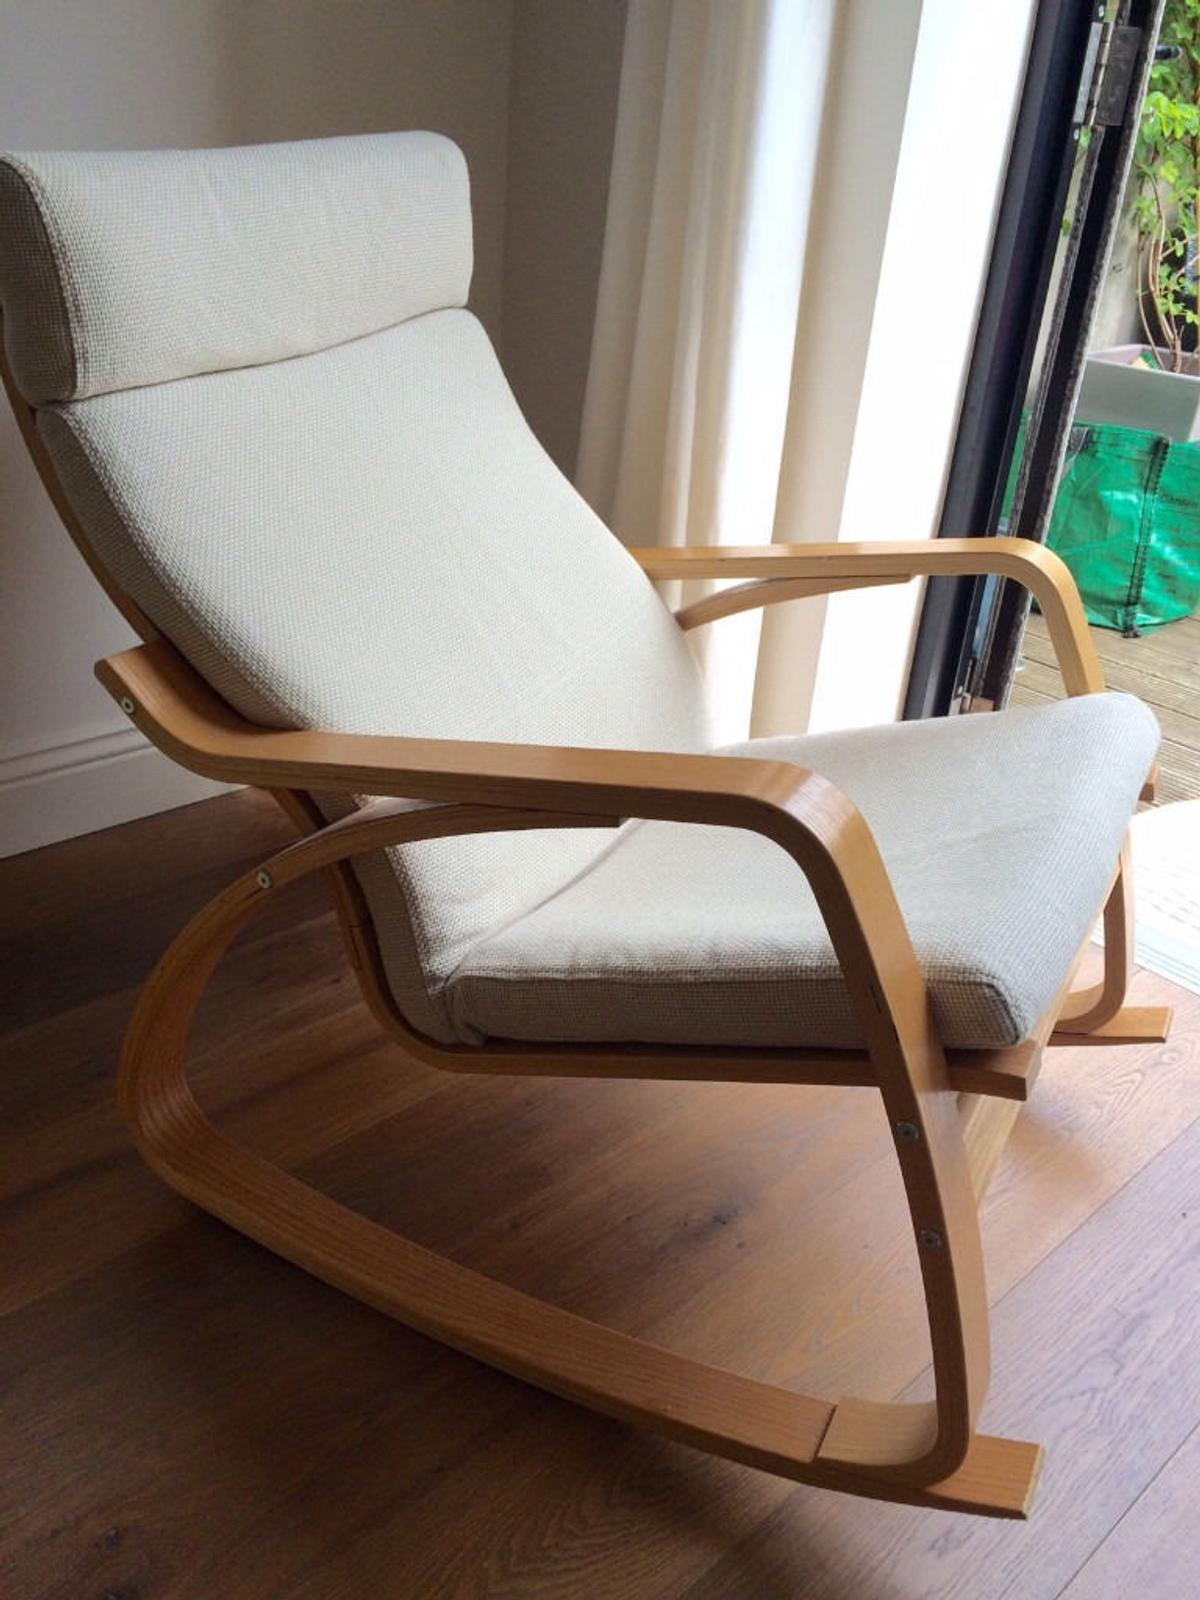 Ikea Poang rocking chair in Salford for £60.00 for sale | Shpock